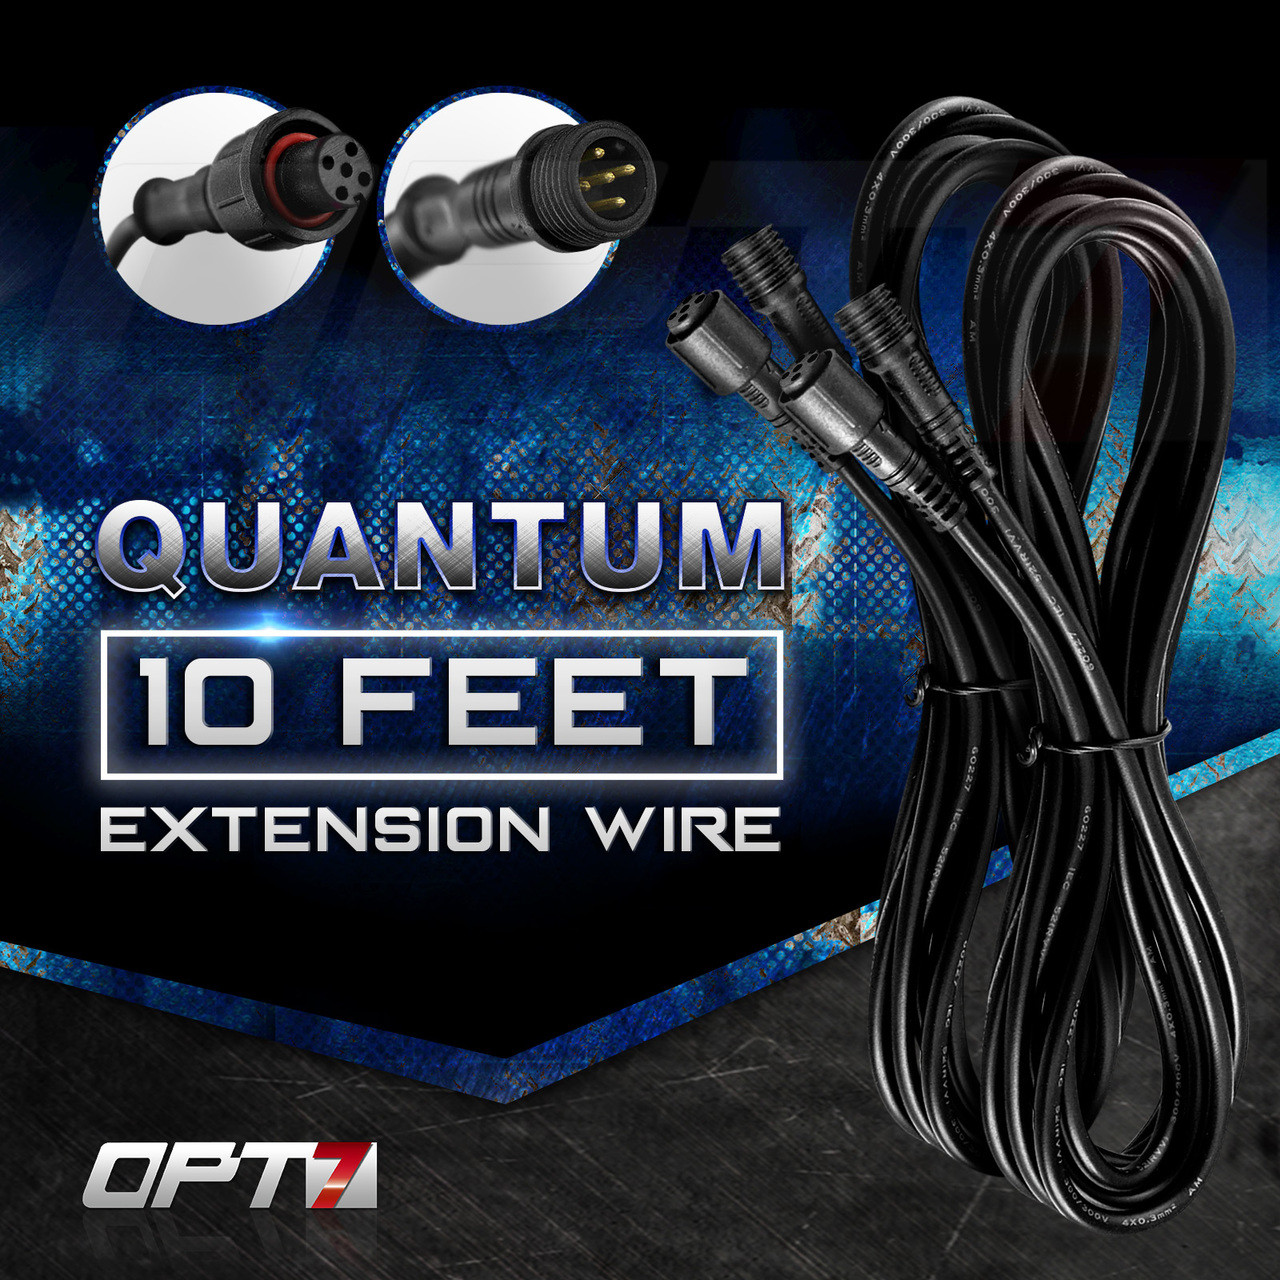 10-Foot Extension Wires for AURA Quantum LED Rock Light Kit (Pair) on